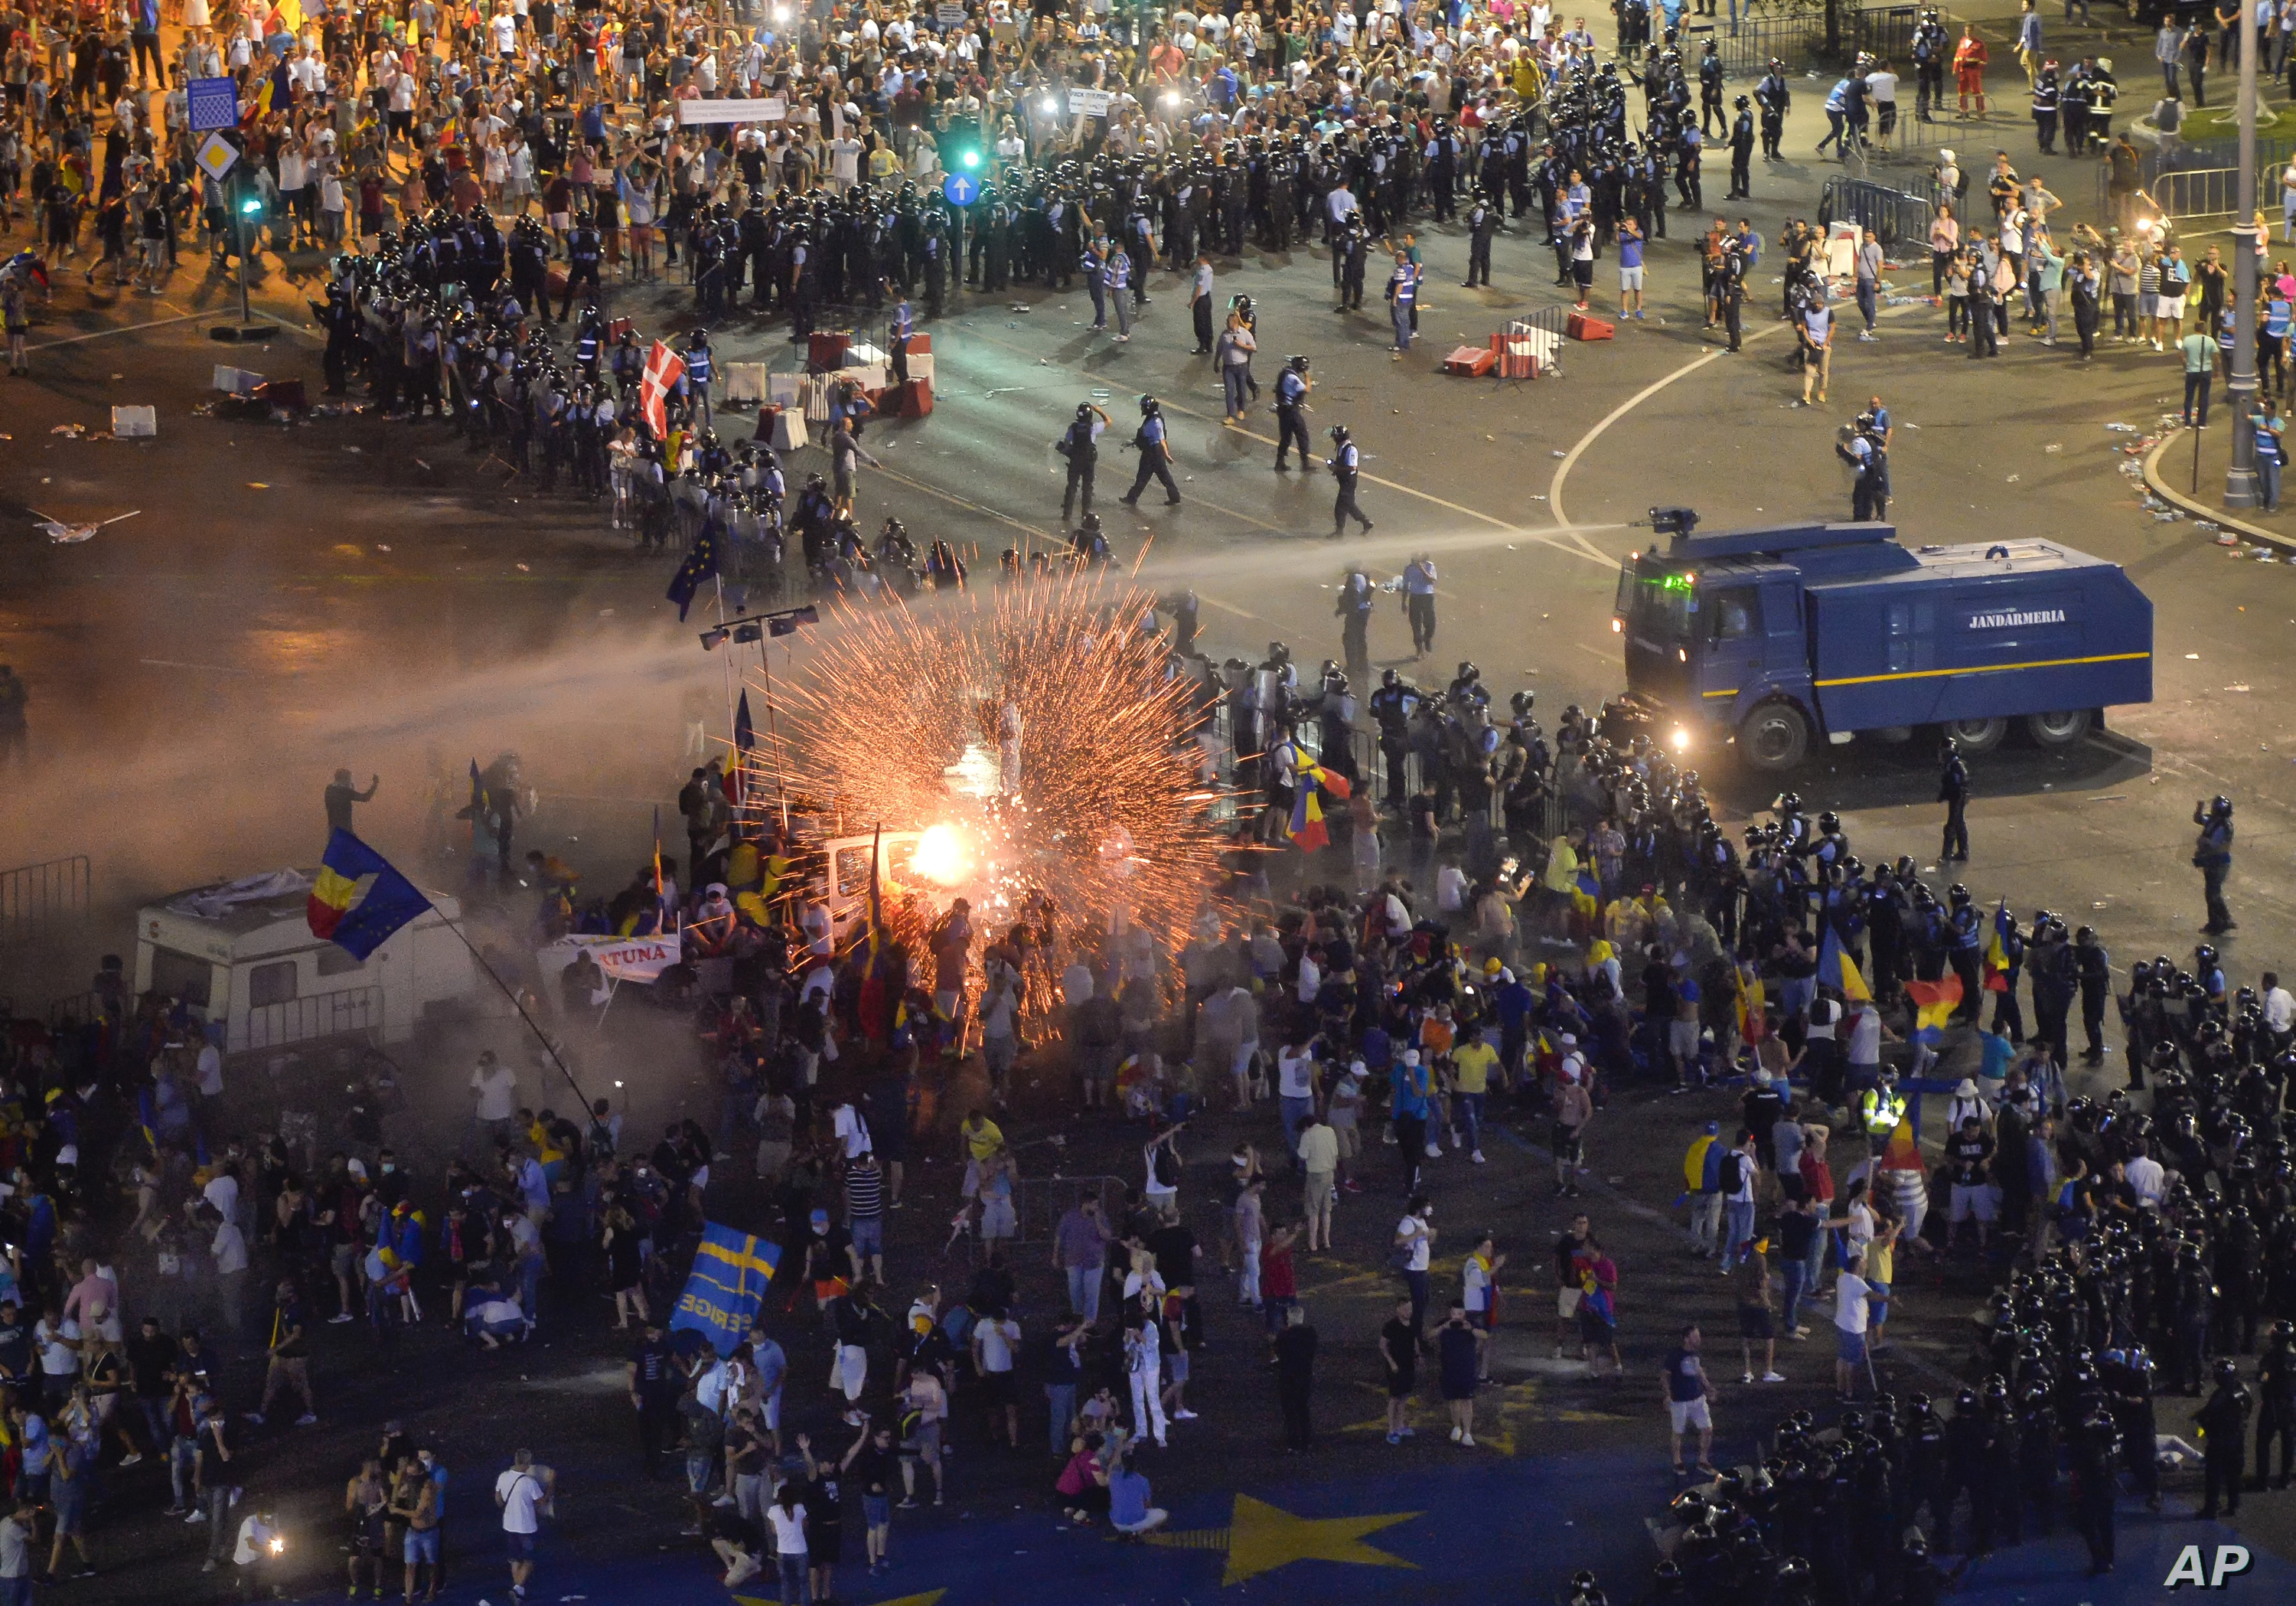 a teargas canister explodes as riot police charge using canon to clear the square during protests outside the government headquarters in Bucharest, Romania.